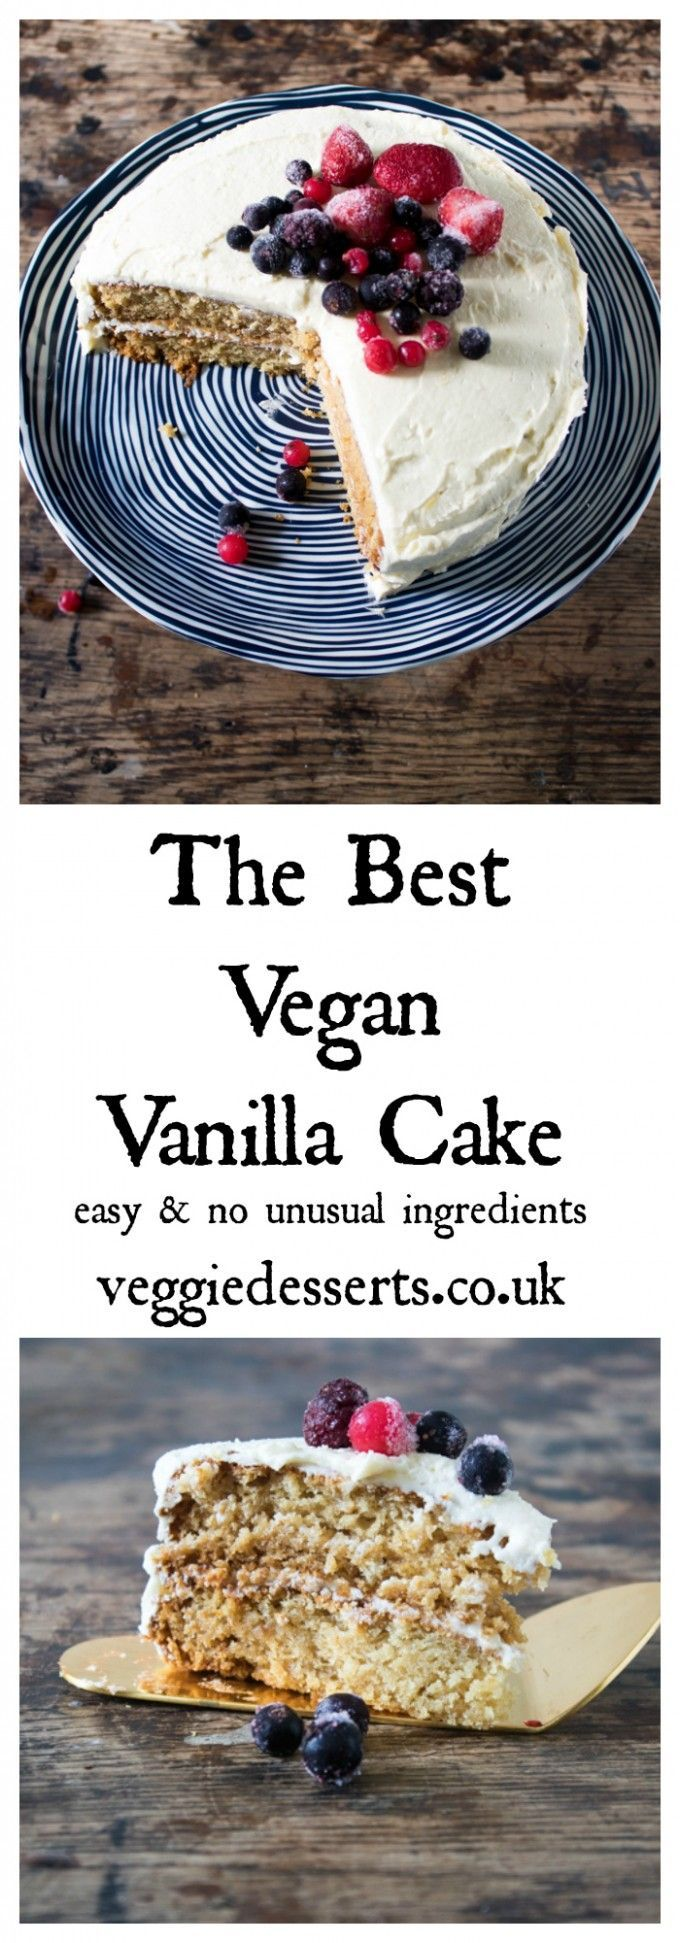 5434 best best of british food bloggers uk images on pinterest the best vegan vanilla cake with berries veggie desserts blog this forumfinder Image collections